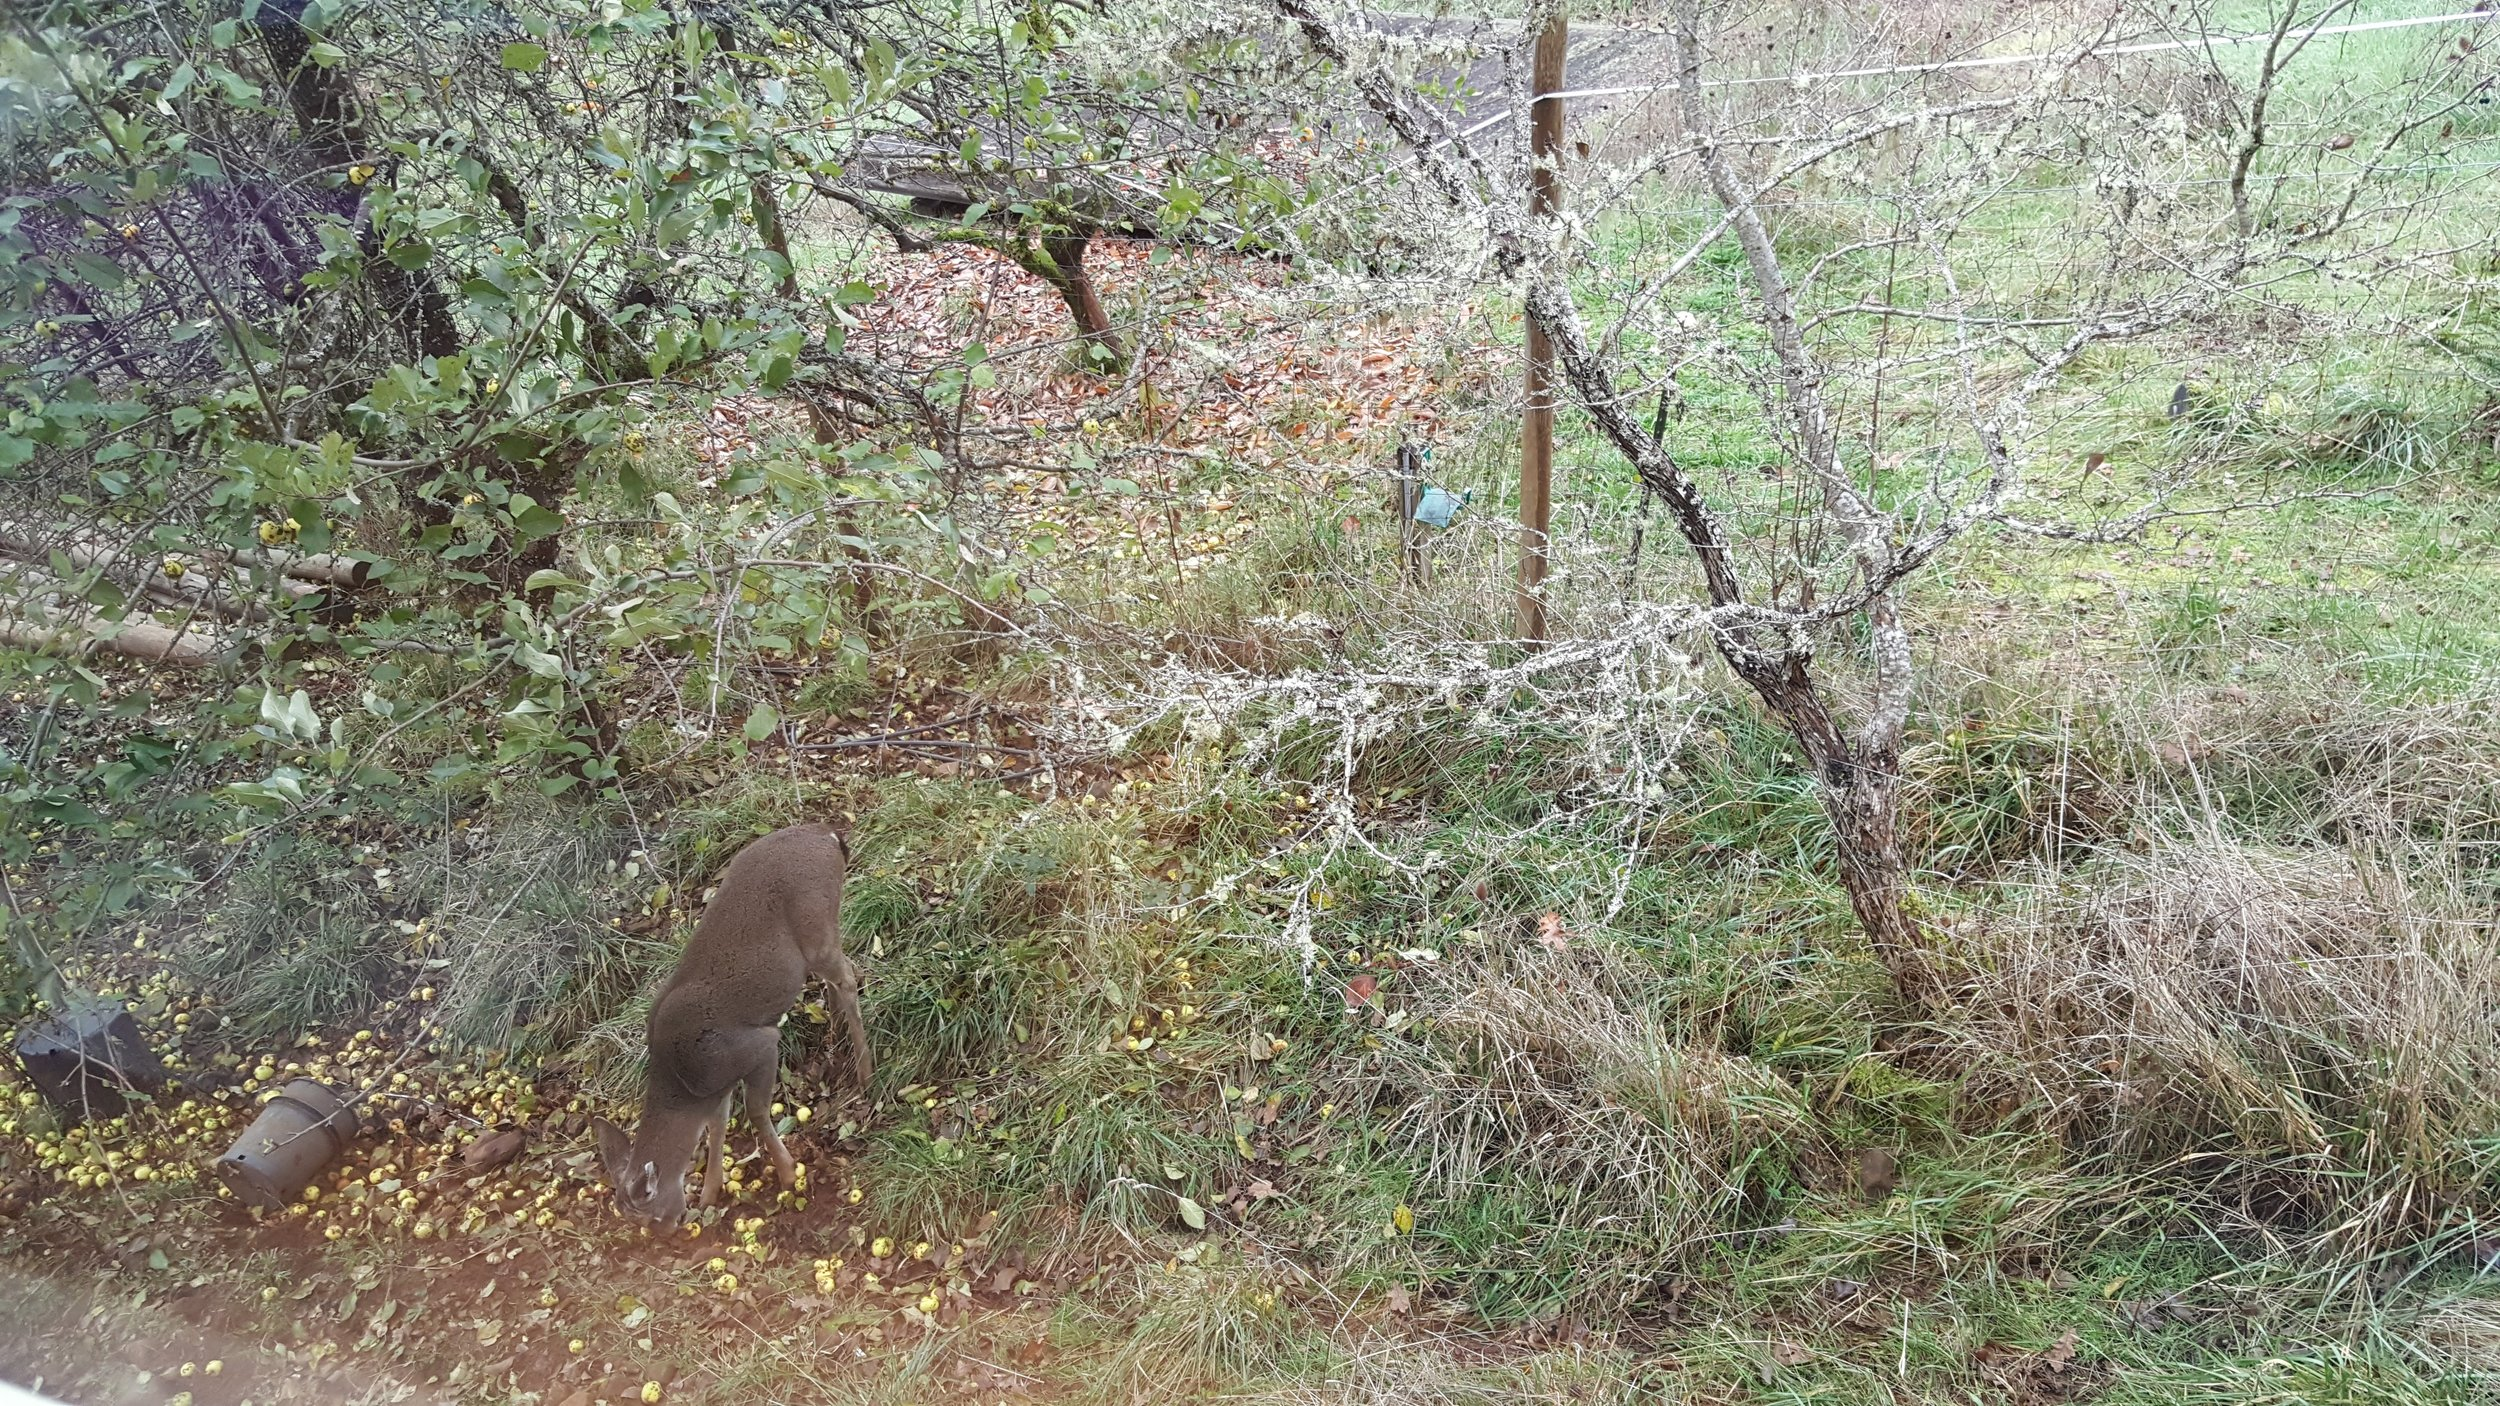 View from the dining room.. frequently the deer like to come to this spot for the apples falling off the apple tree